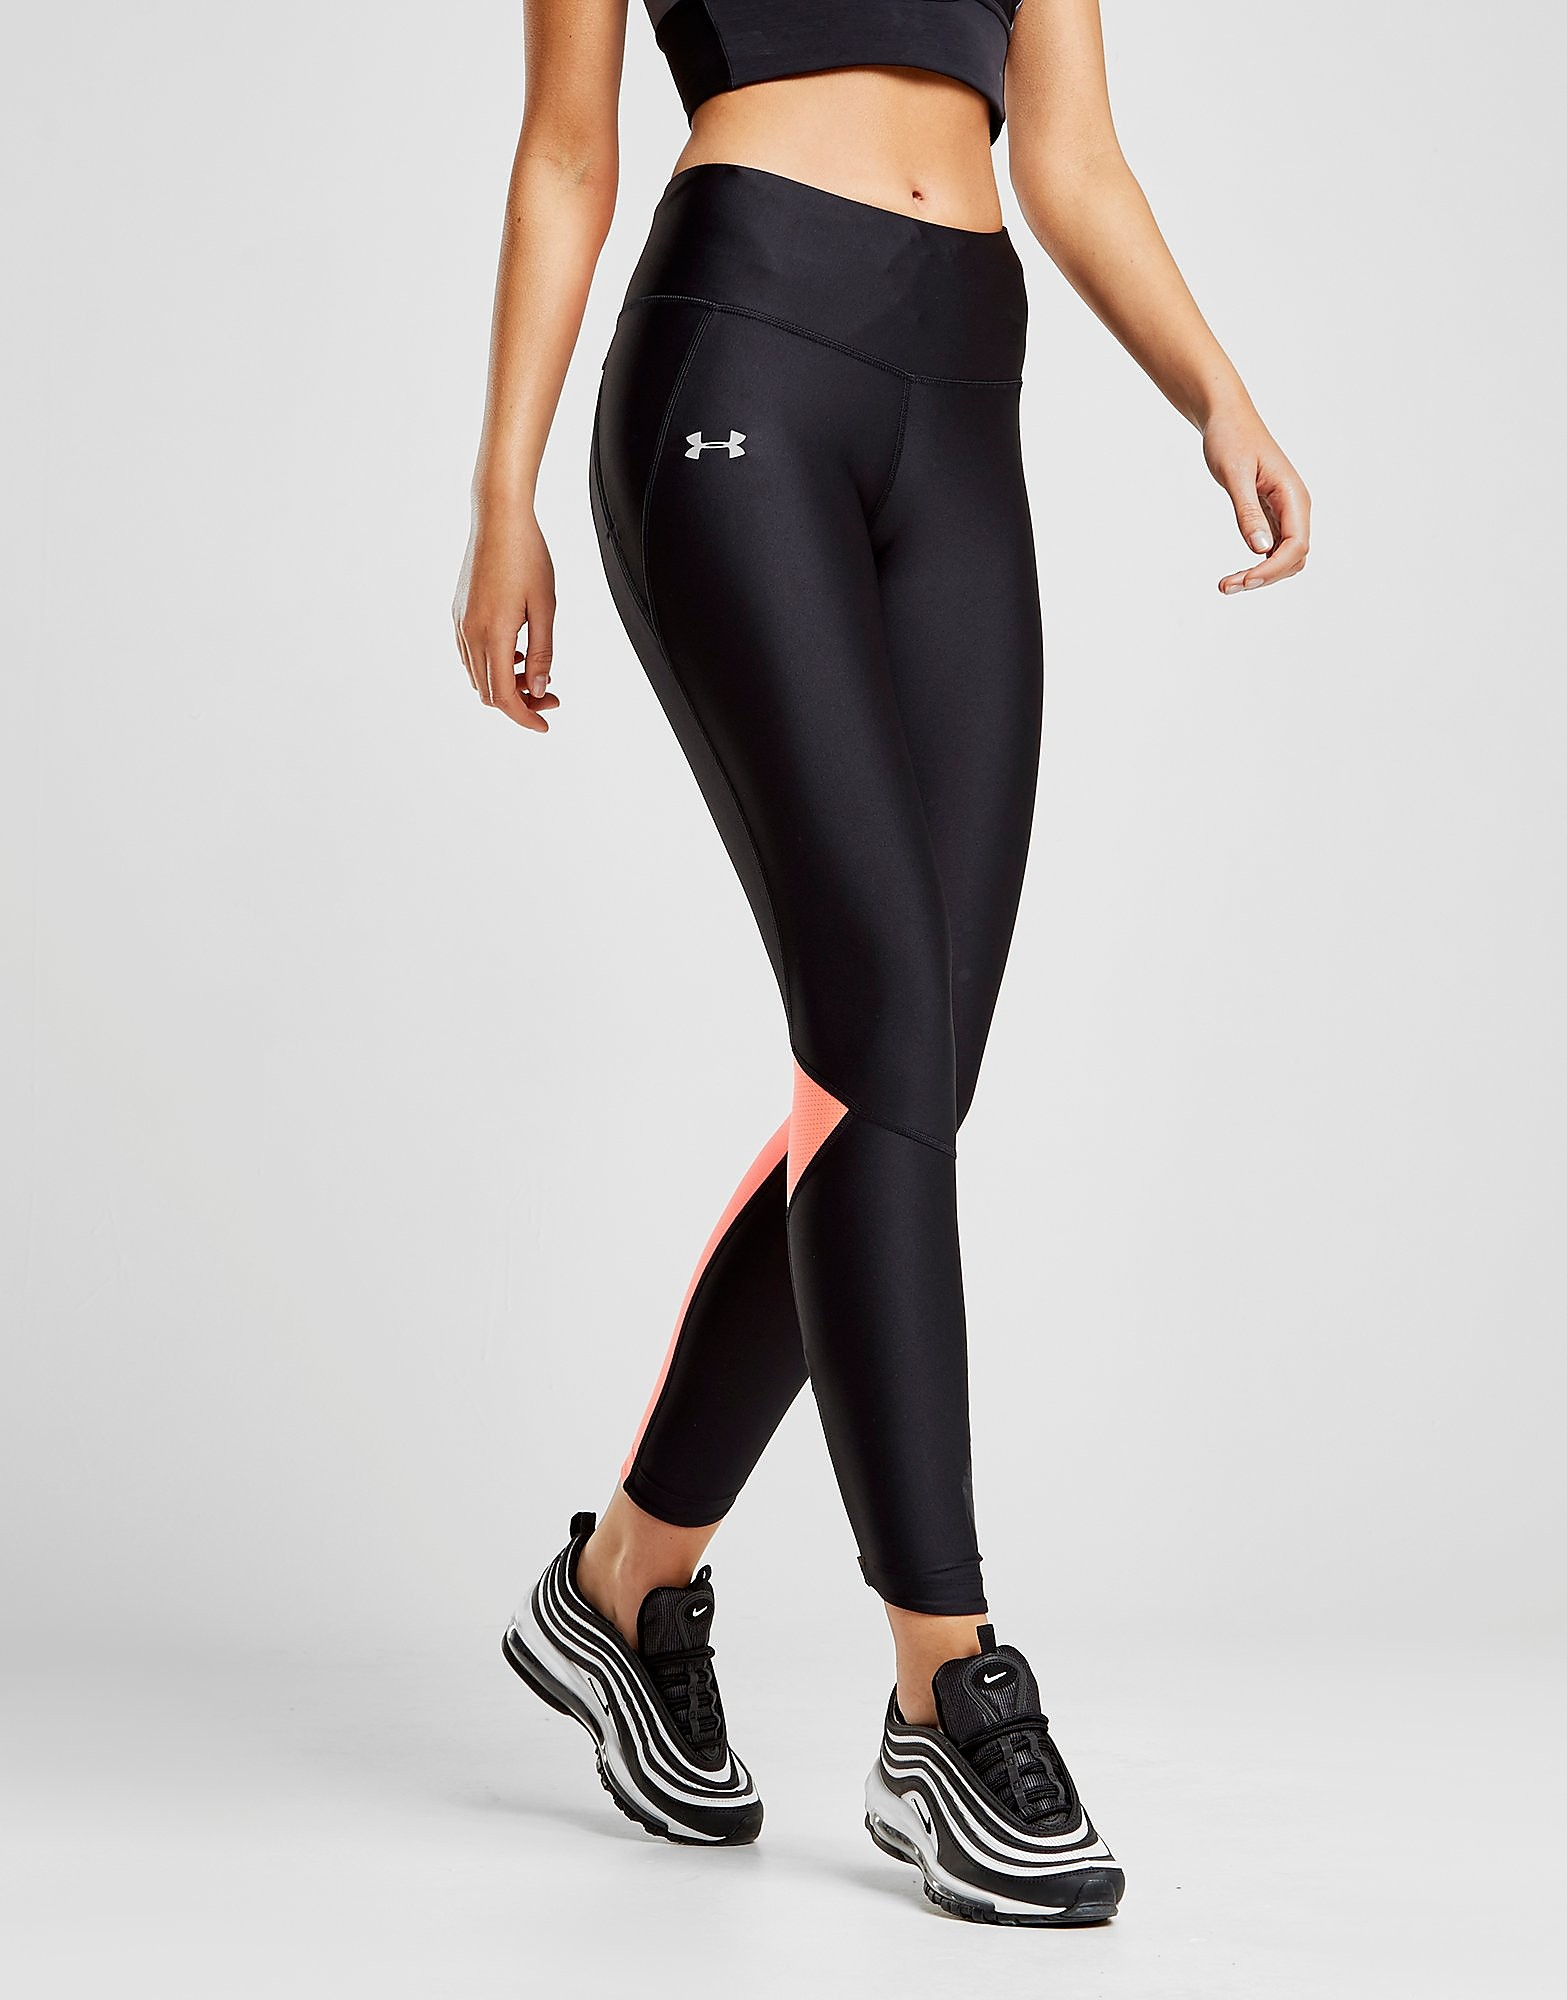 Under Armour Collants Fly Fast Femme